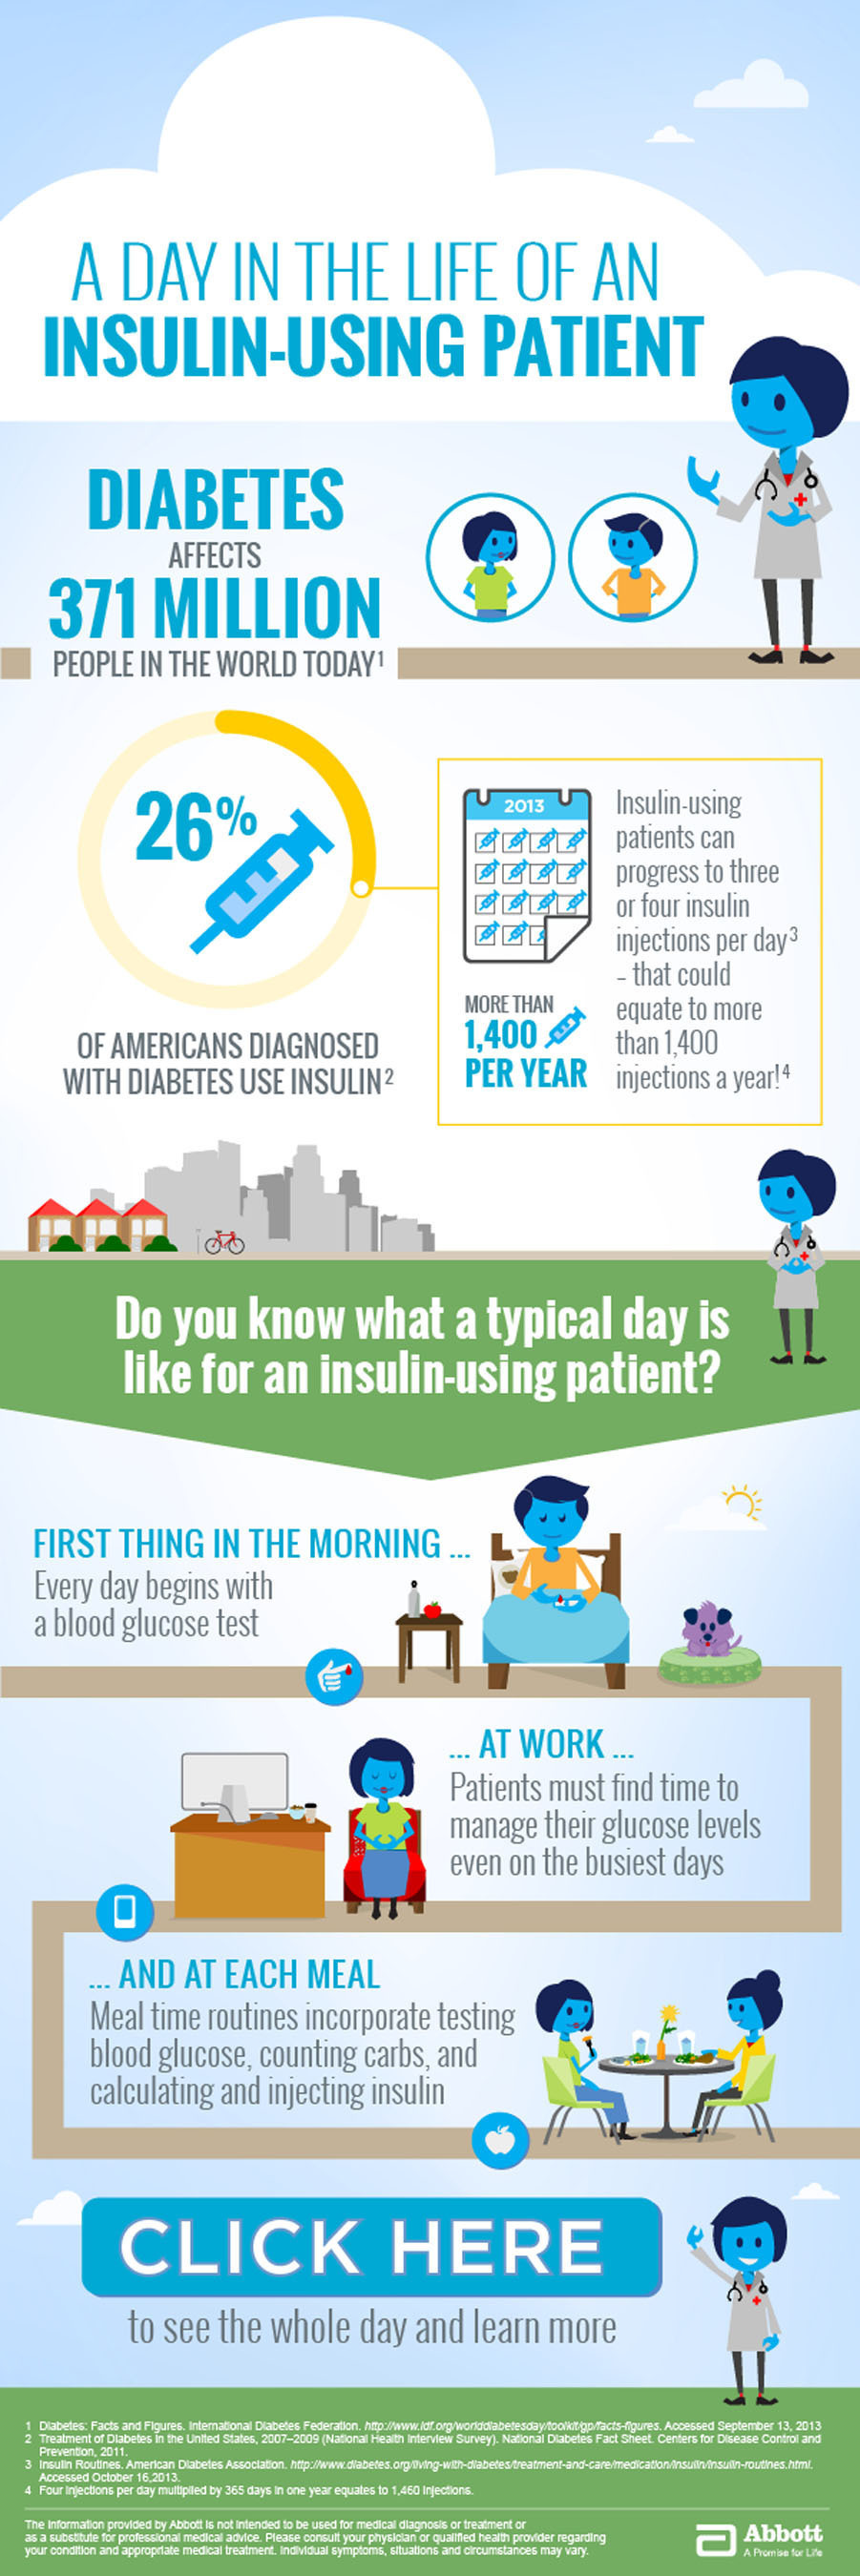 "Experience ""A Day in the Life"" of an Insulin-using Patient with Diabetes through Abbott's Interactive Infographic.  (PRNewsFoto/Abbott)"